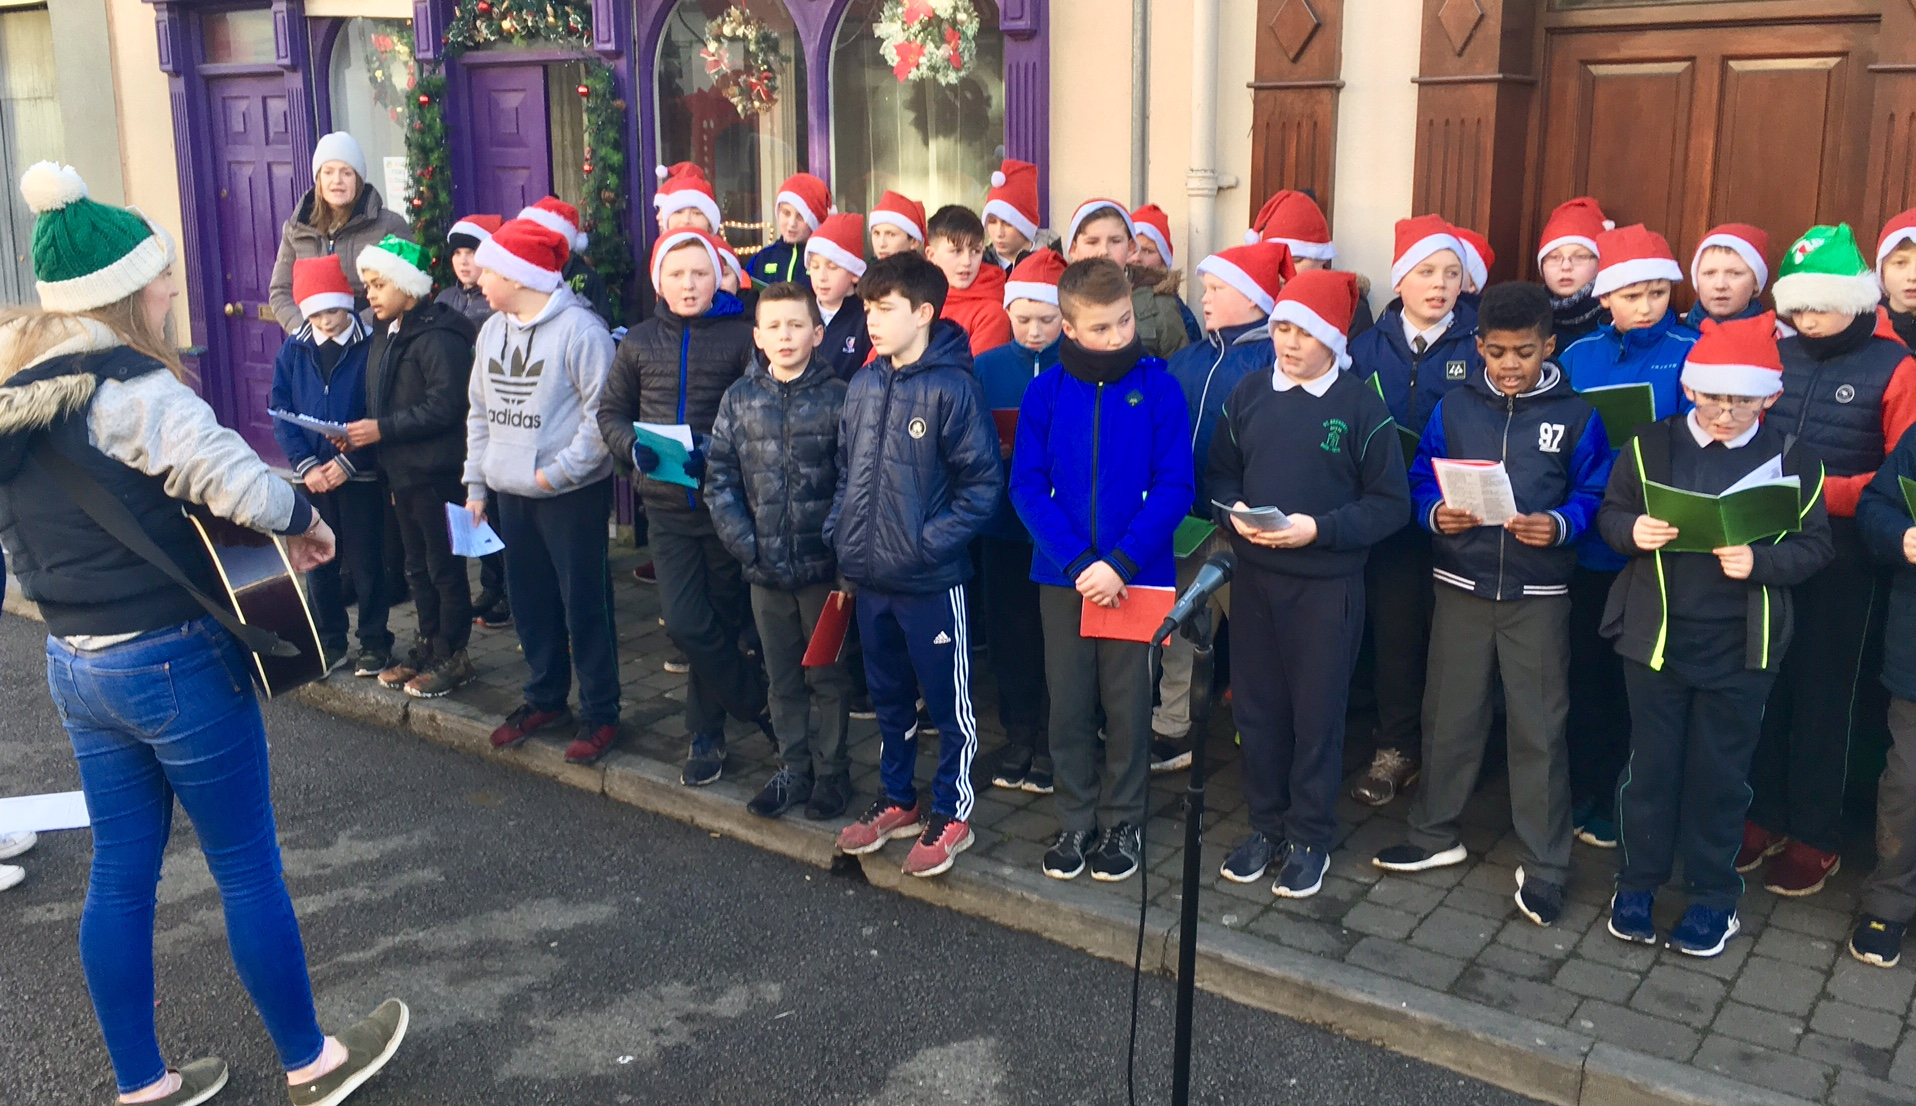 carol singing at lights